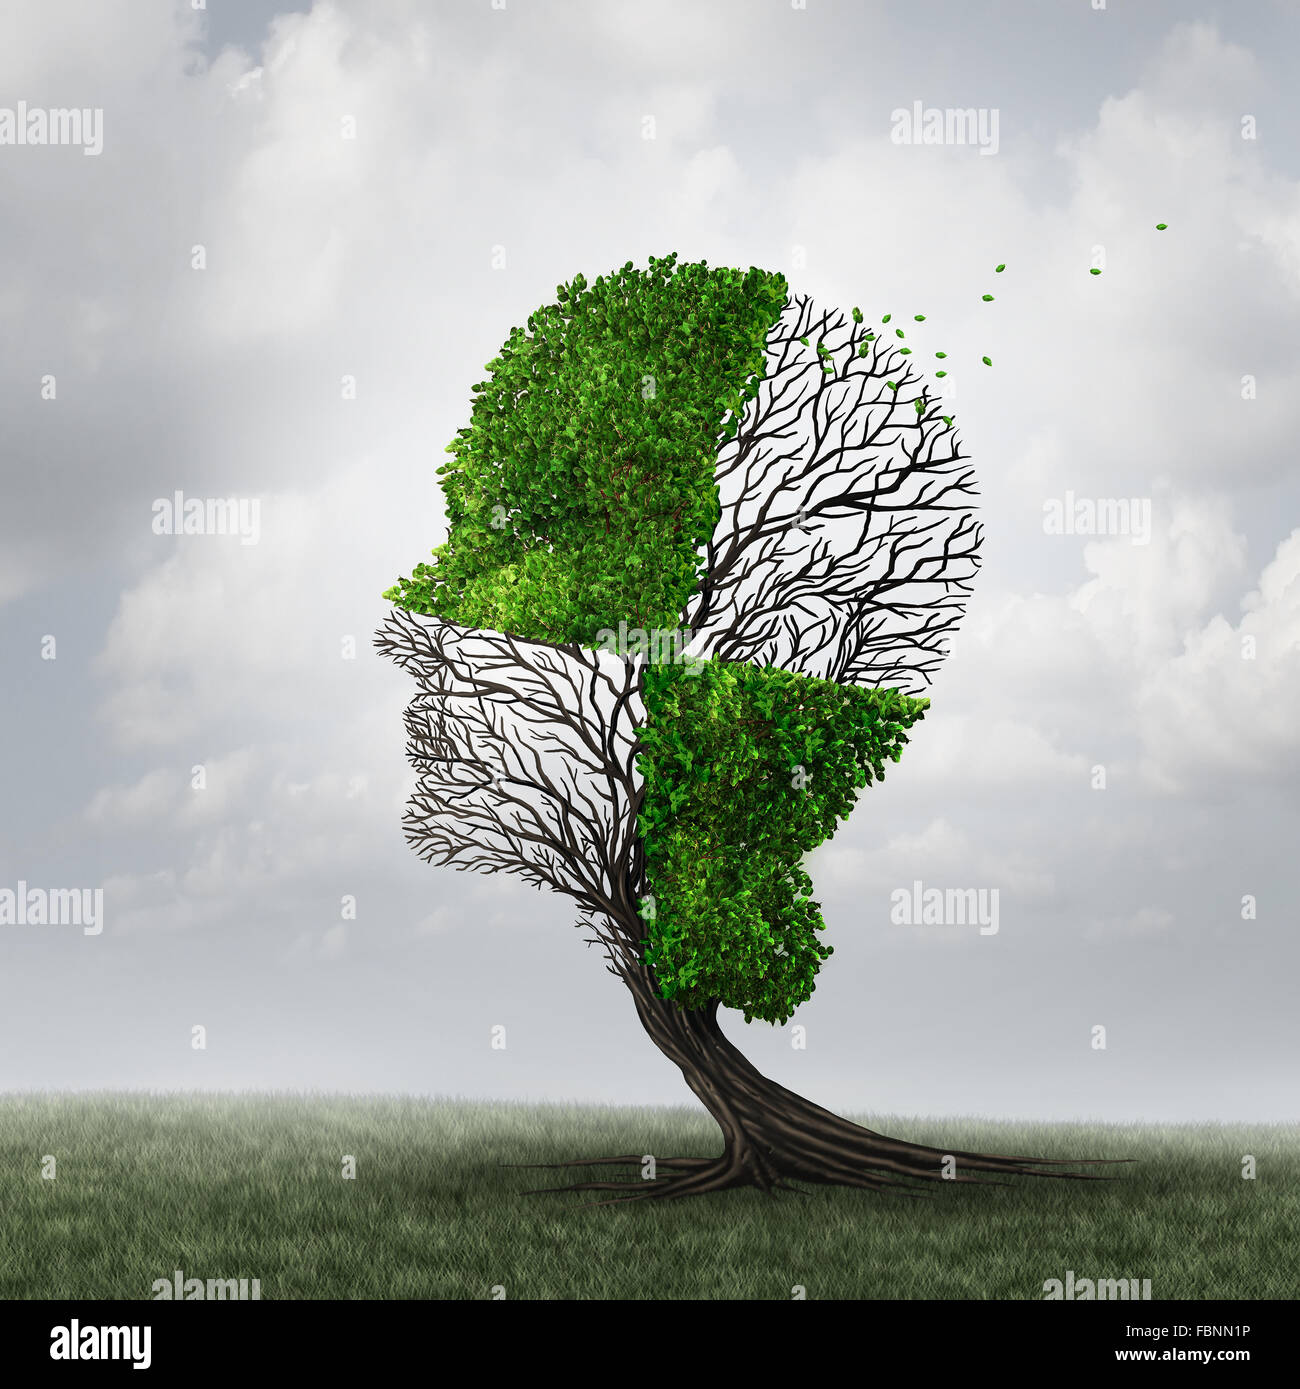 Compartmentalization and compartmentalize psychology as a mind defense mechanism concept or mental health disease - Stock Image